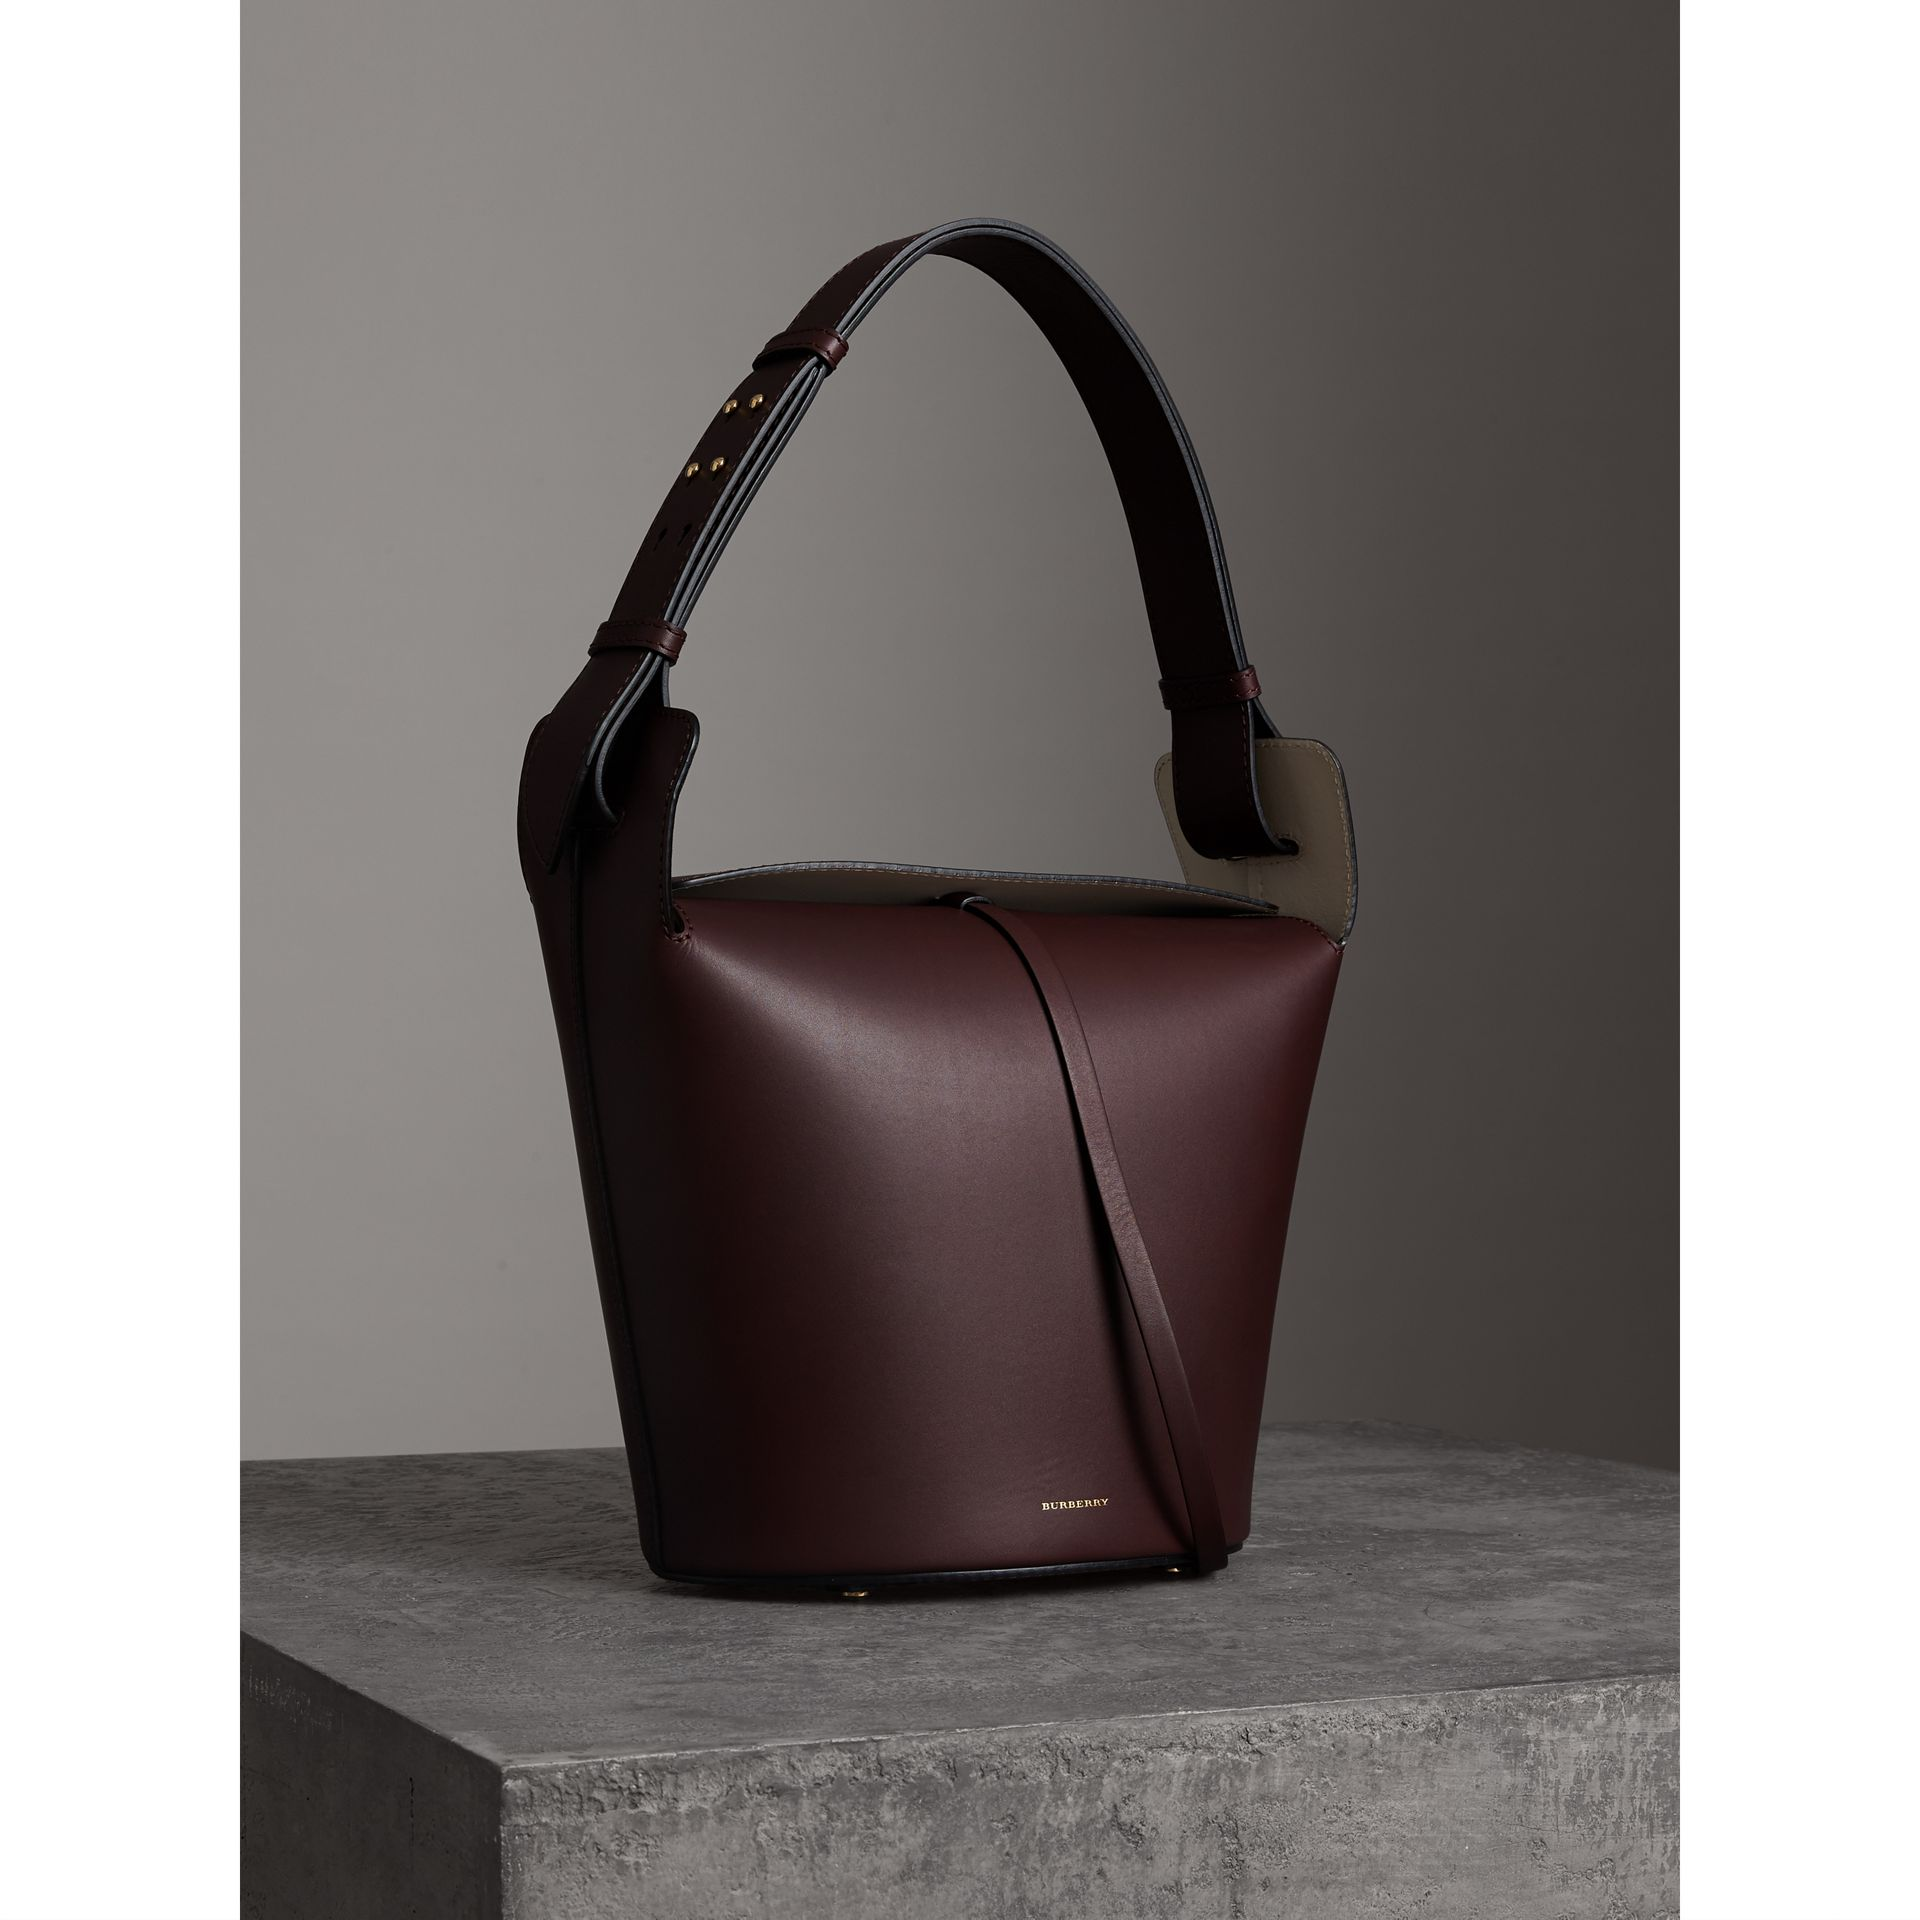 Sac The Bucket moyen en cuir (Bordeaux Intense) - Femme | Burberry Canada - photo de la galerie 6